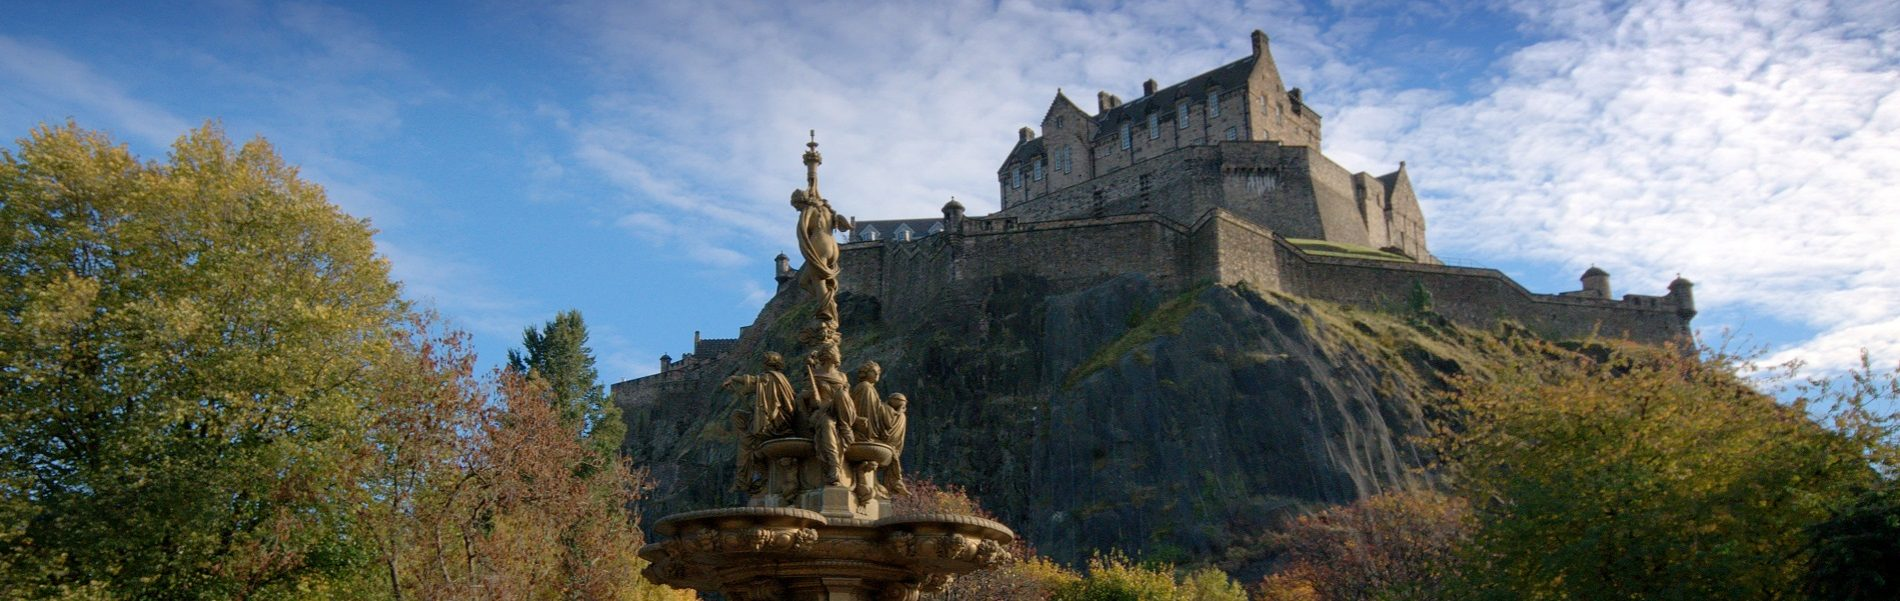 Tours of Scotland - Edinburgh Castle